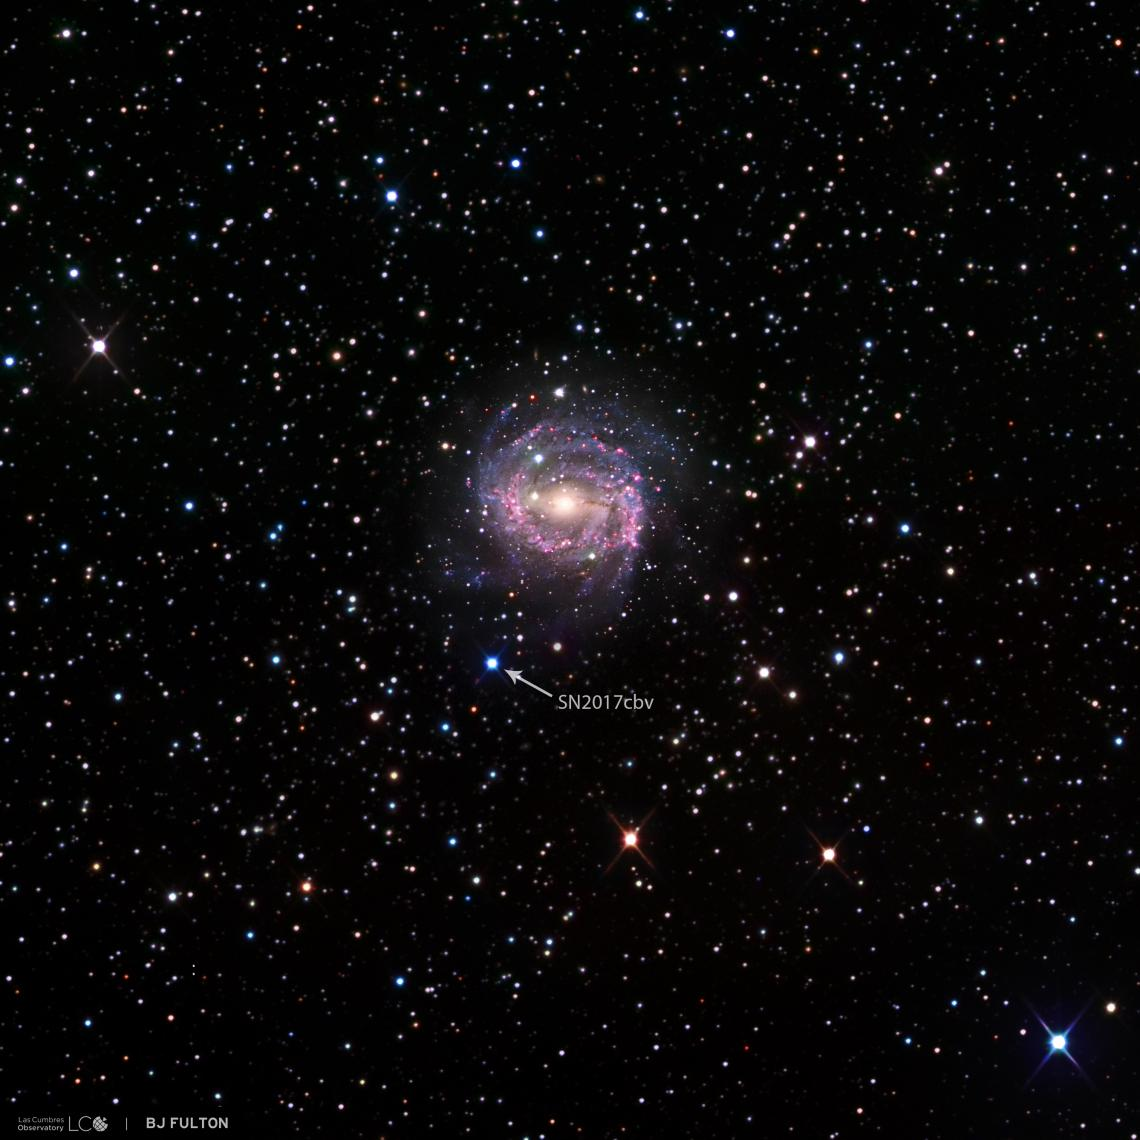 """Bright blue dot: Supernovae such as SN 2017cbv appear as """"stars that weren't there before,"""" which is why multiple images taken over time are necessary to reveal their true identity. SN 2017cbv lies in the outskirts of a spiral galaxy called NGC 5643 that"""